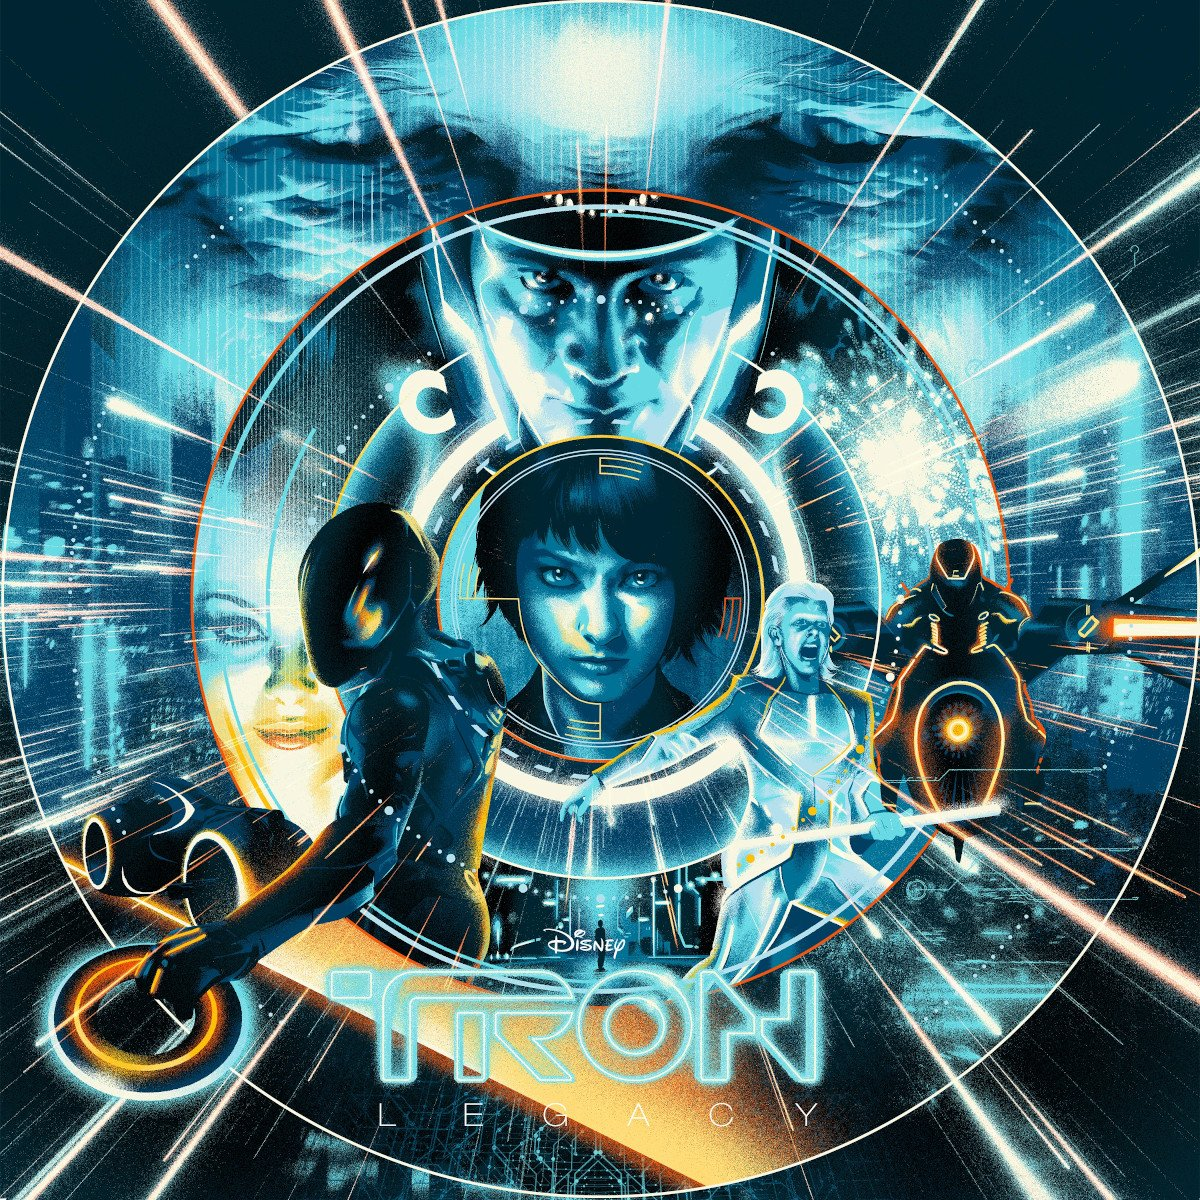 Tron: Legacy Soundtrack Cover